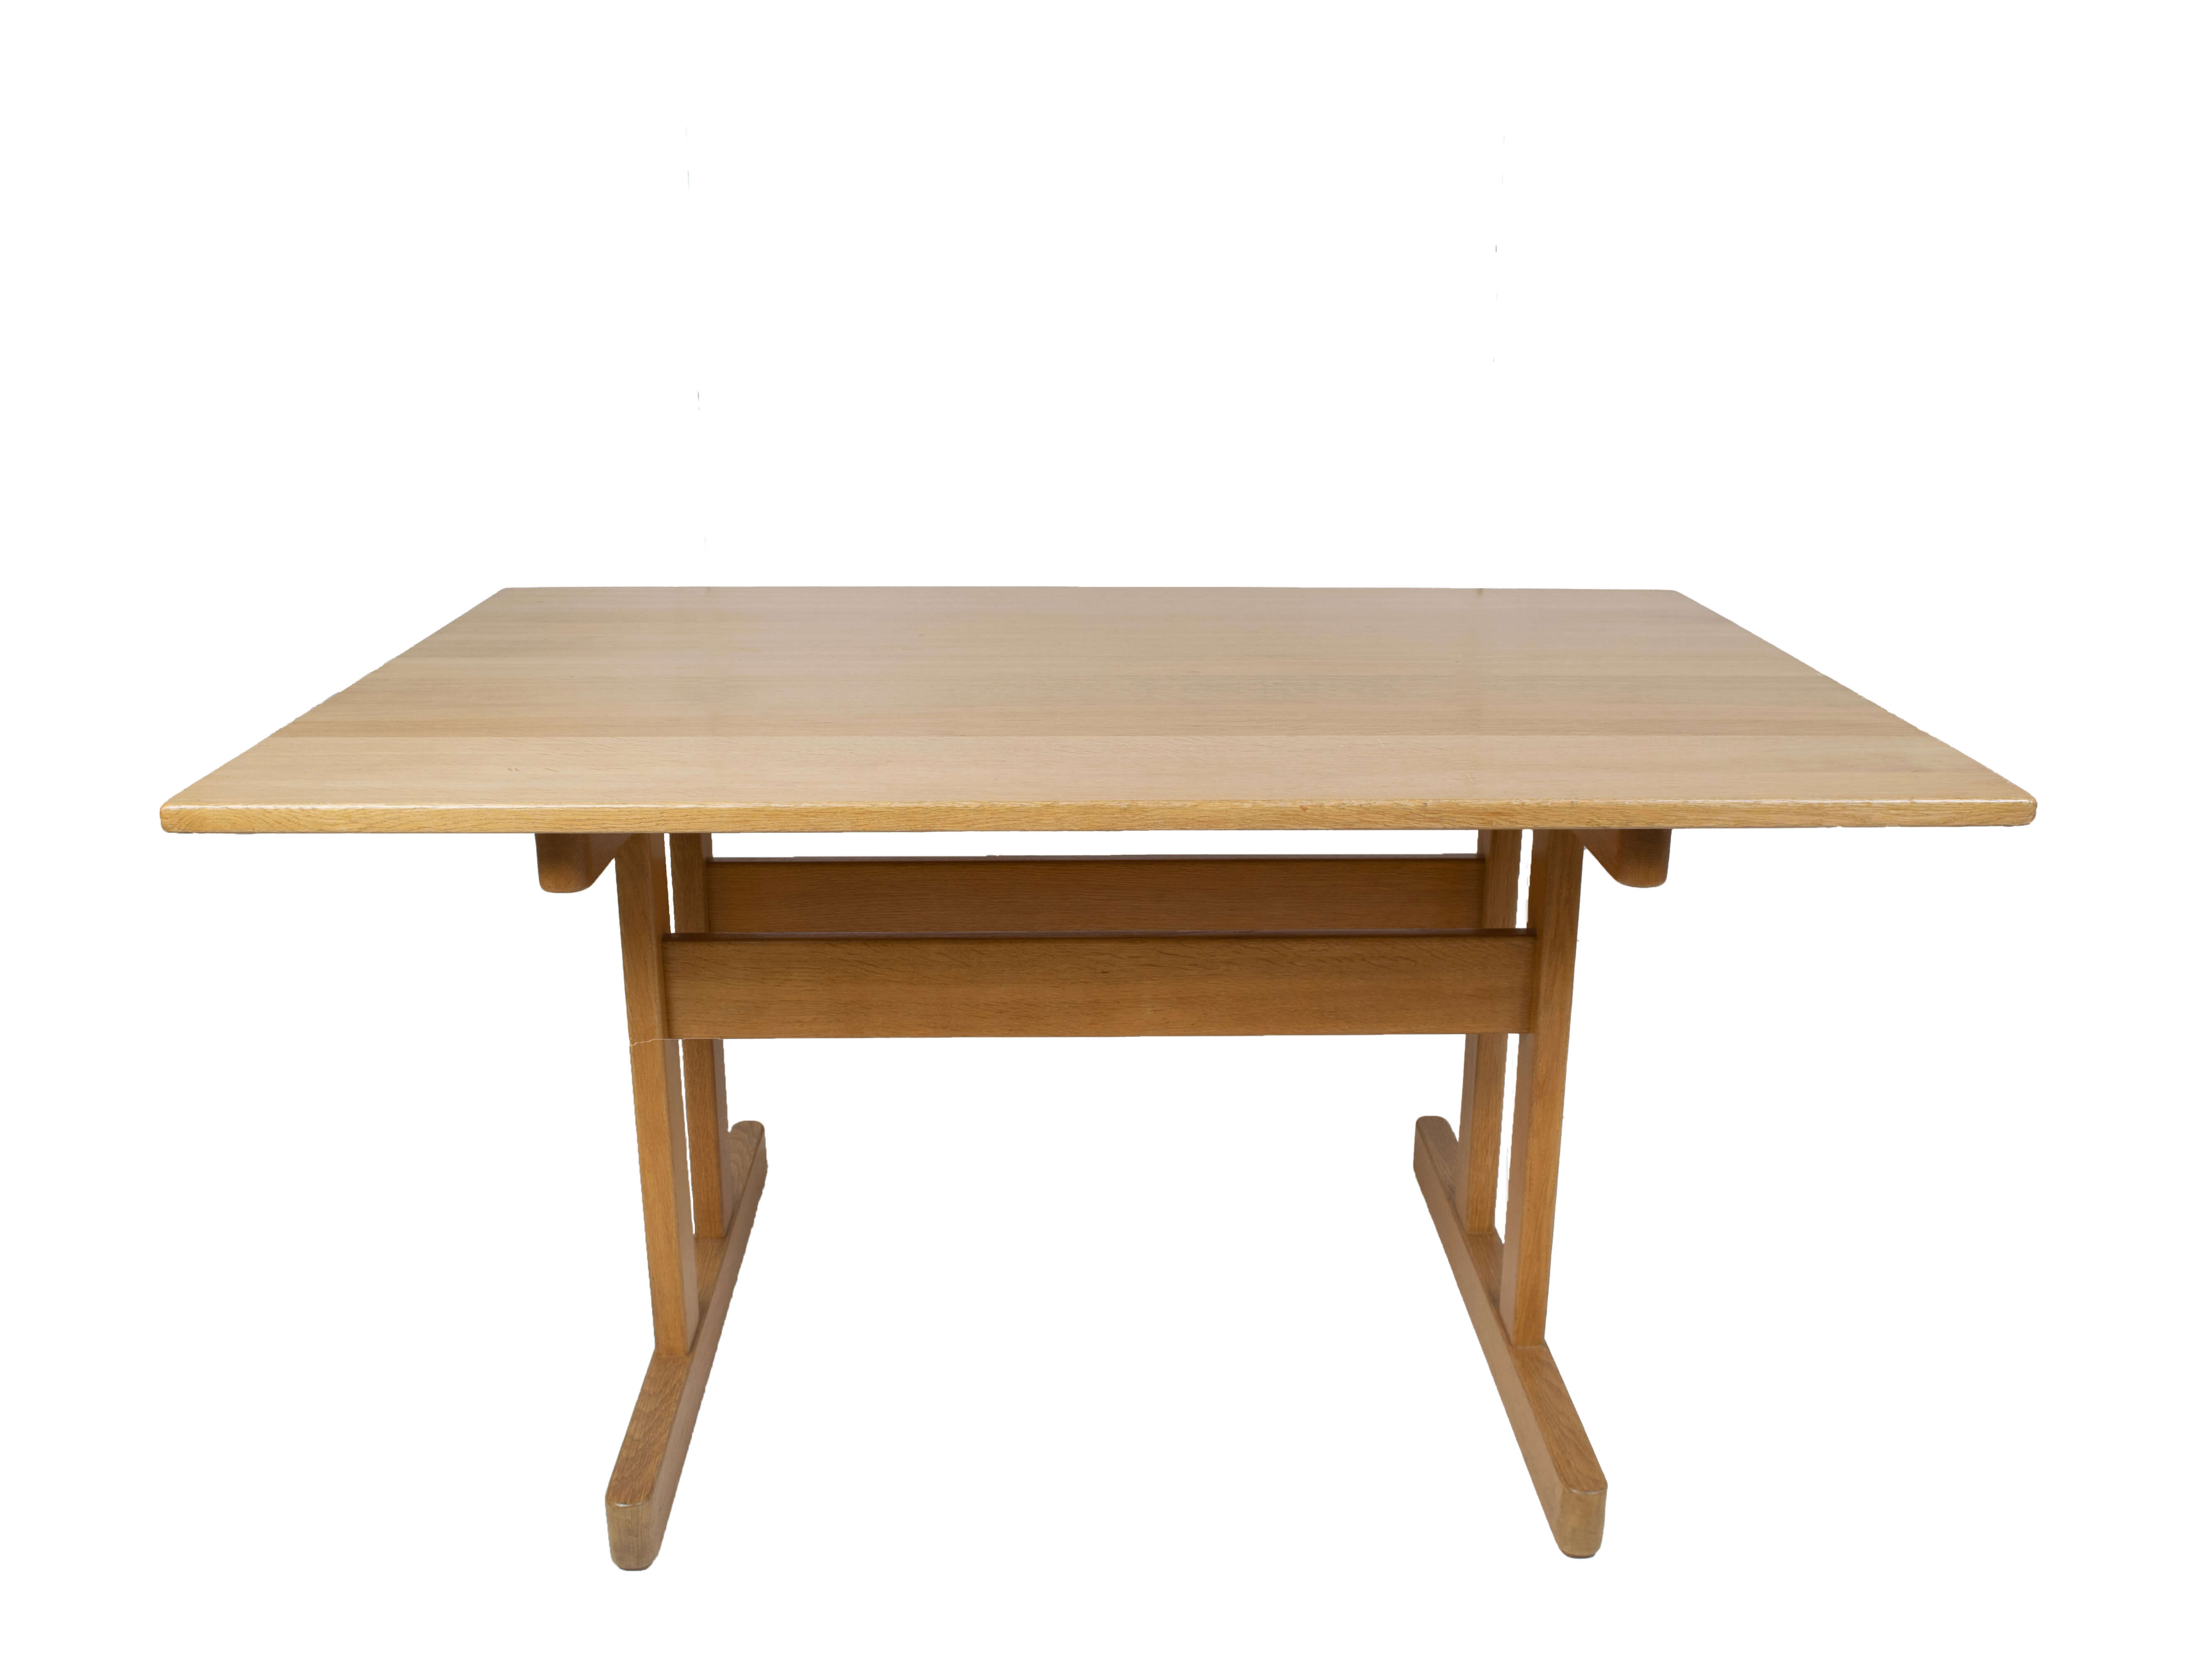 Shaker Dining Table by Kurt Østervig for KP Møbler, Denmark 1976Shaker Dining Table by Kurt Østervig for KP Møbler, Denmark 1976